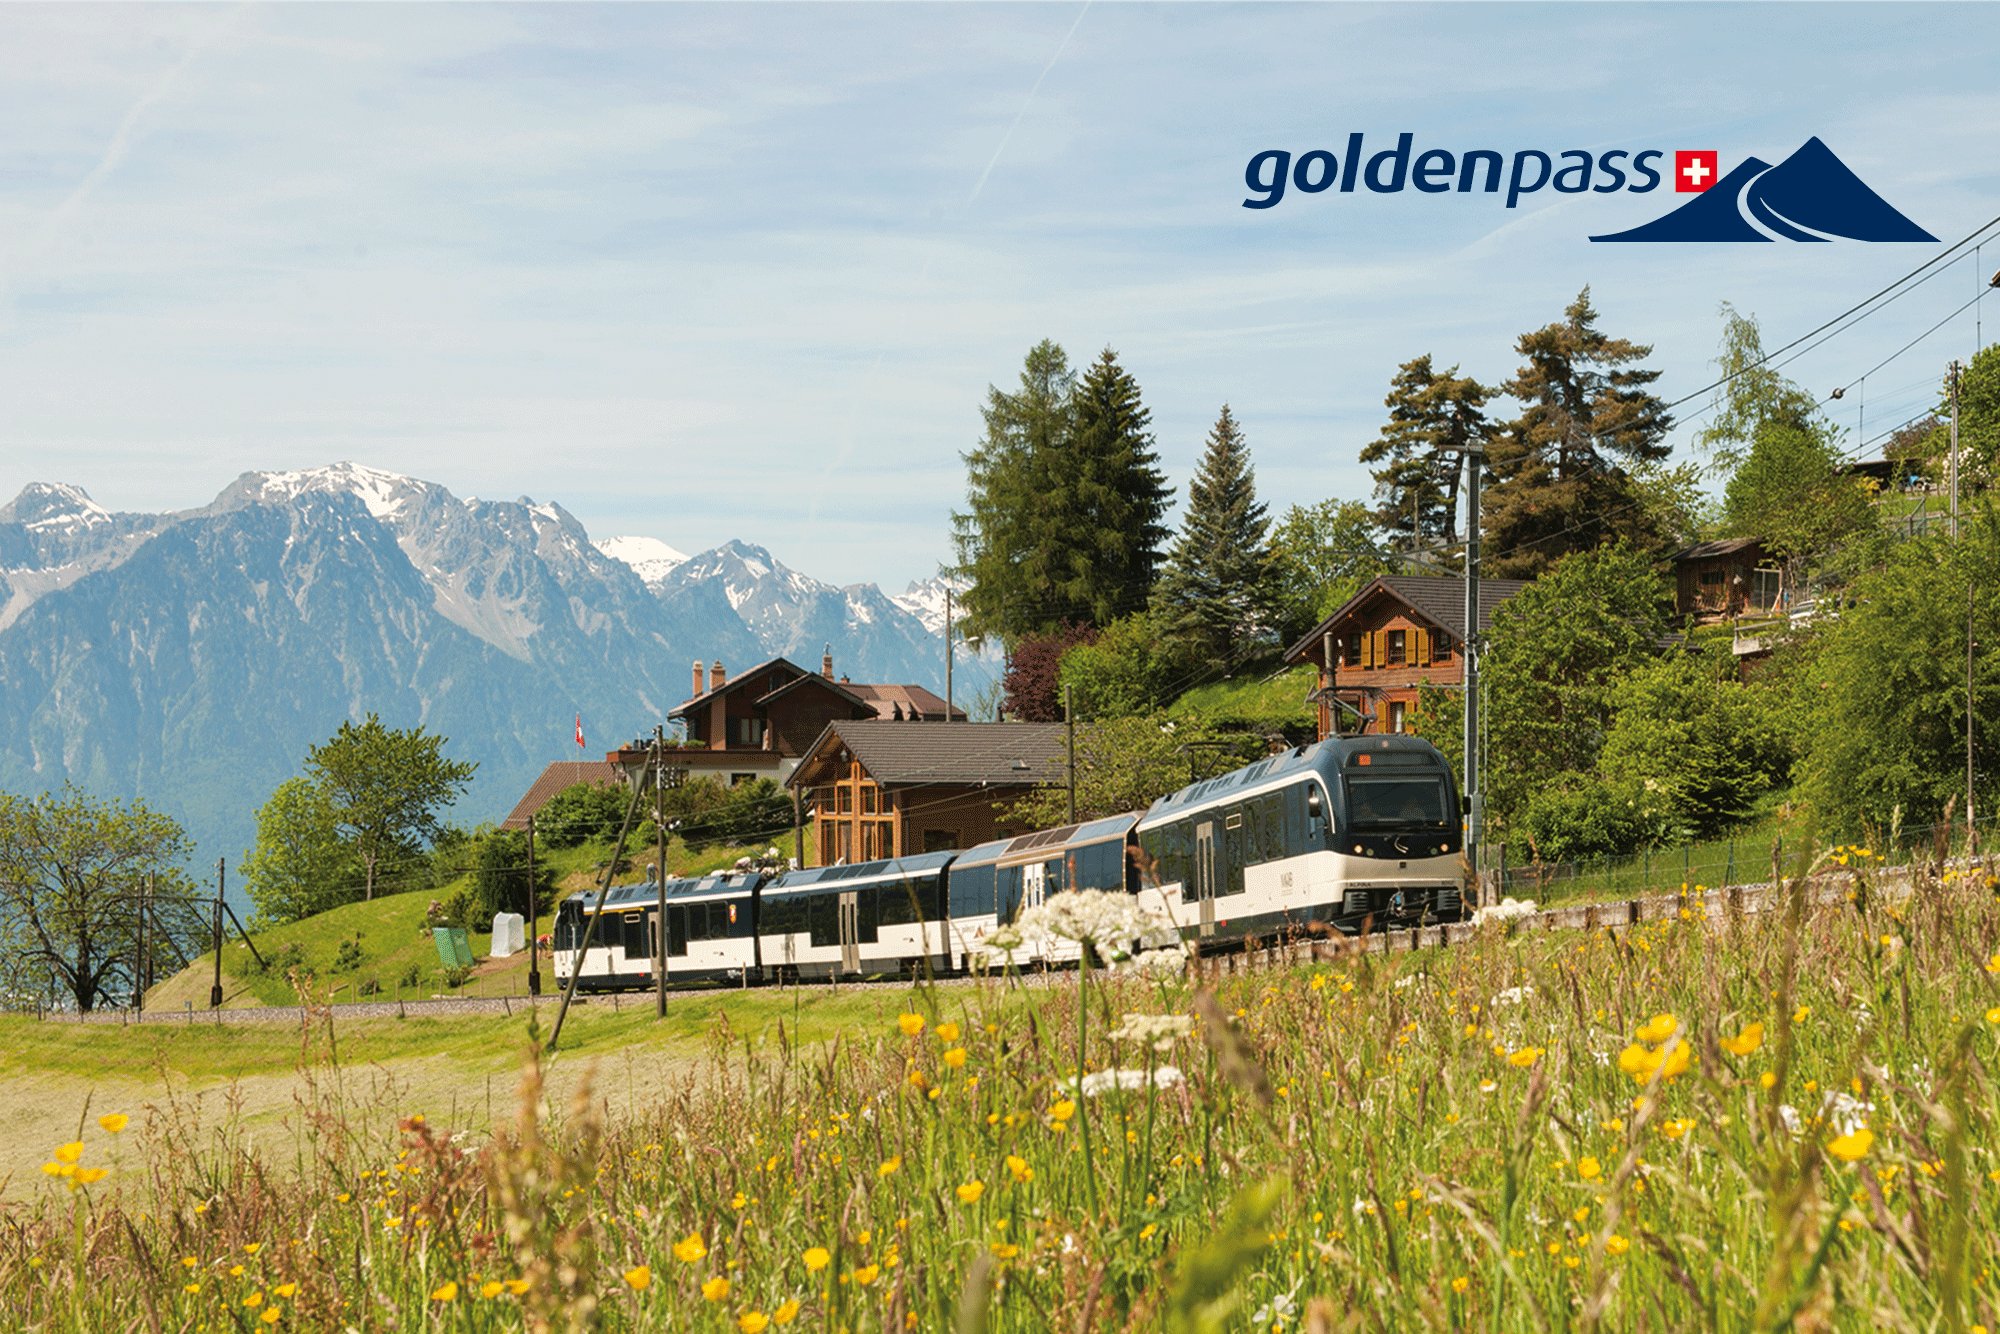 GoldenPass Panoramic